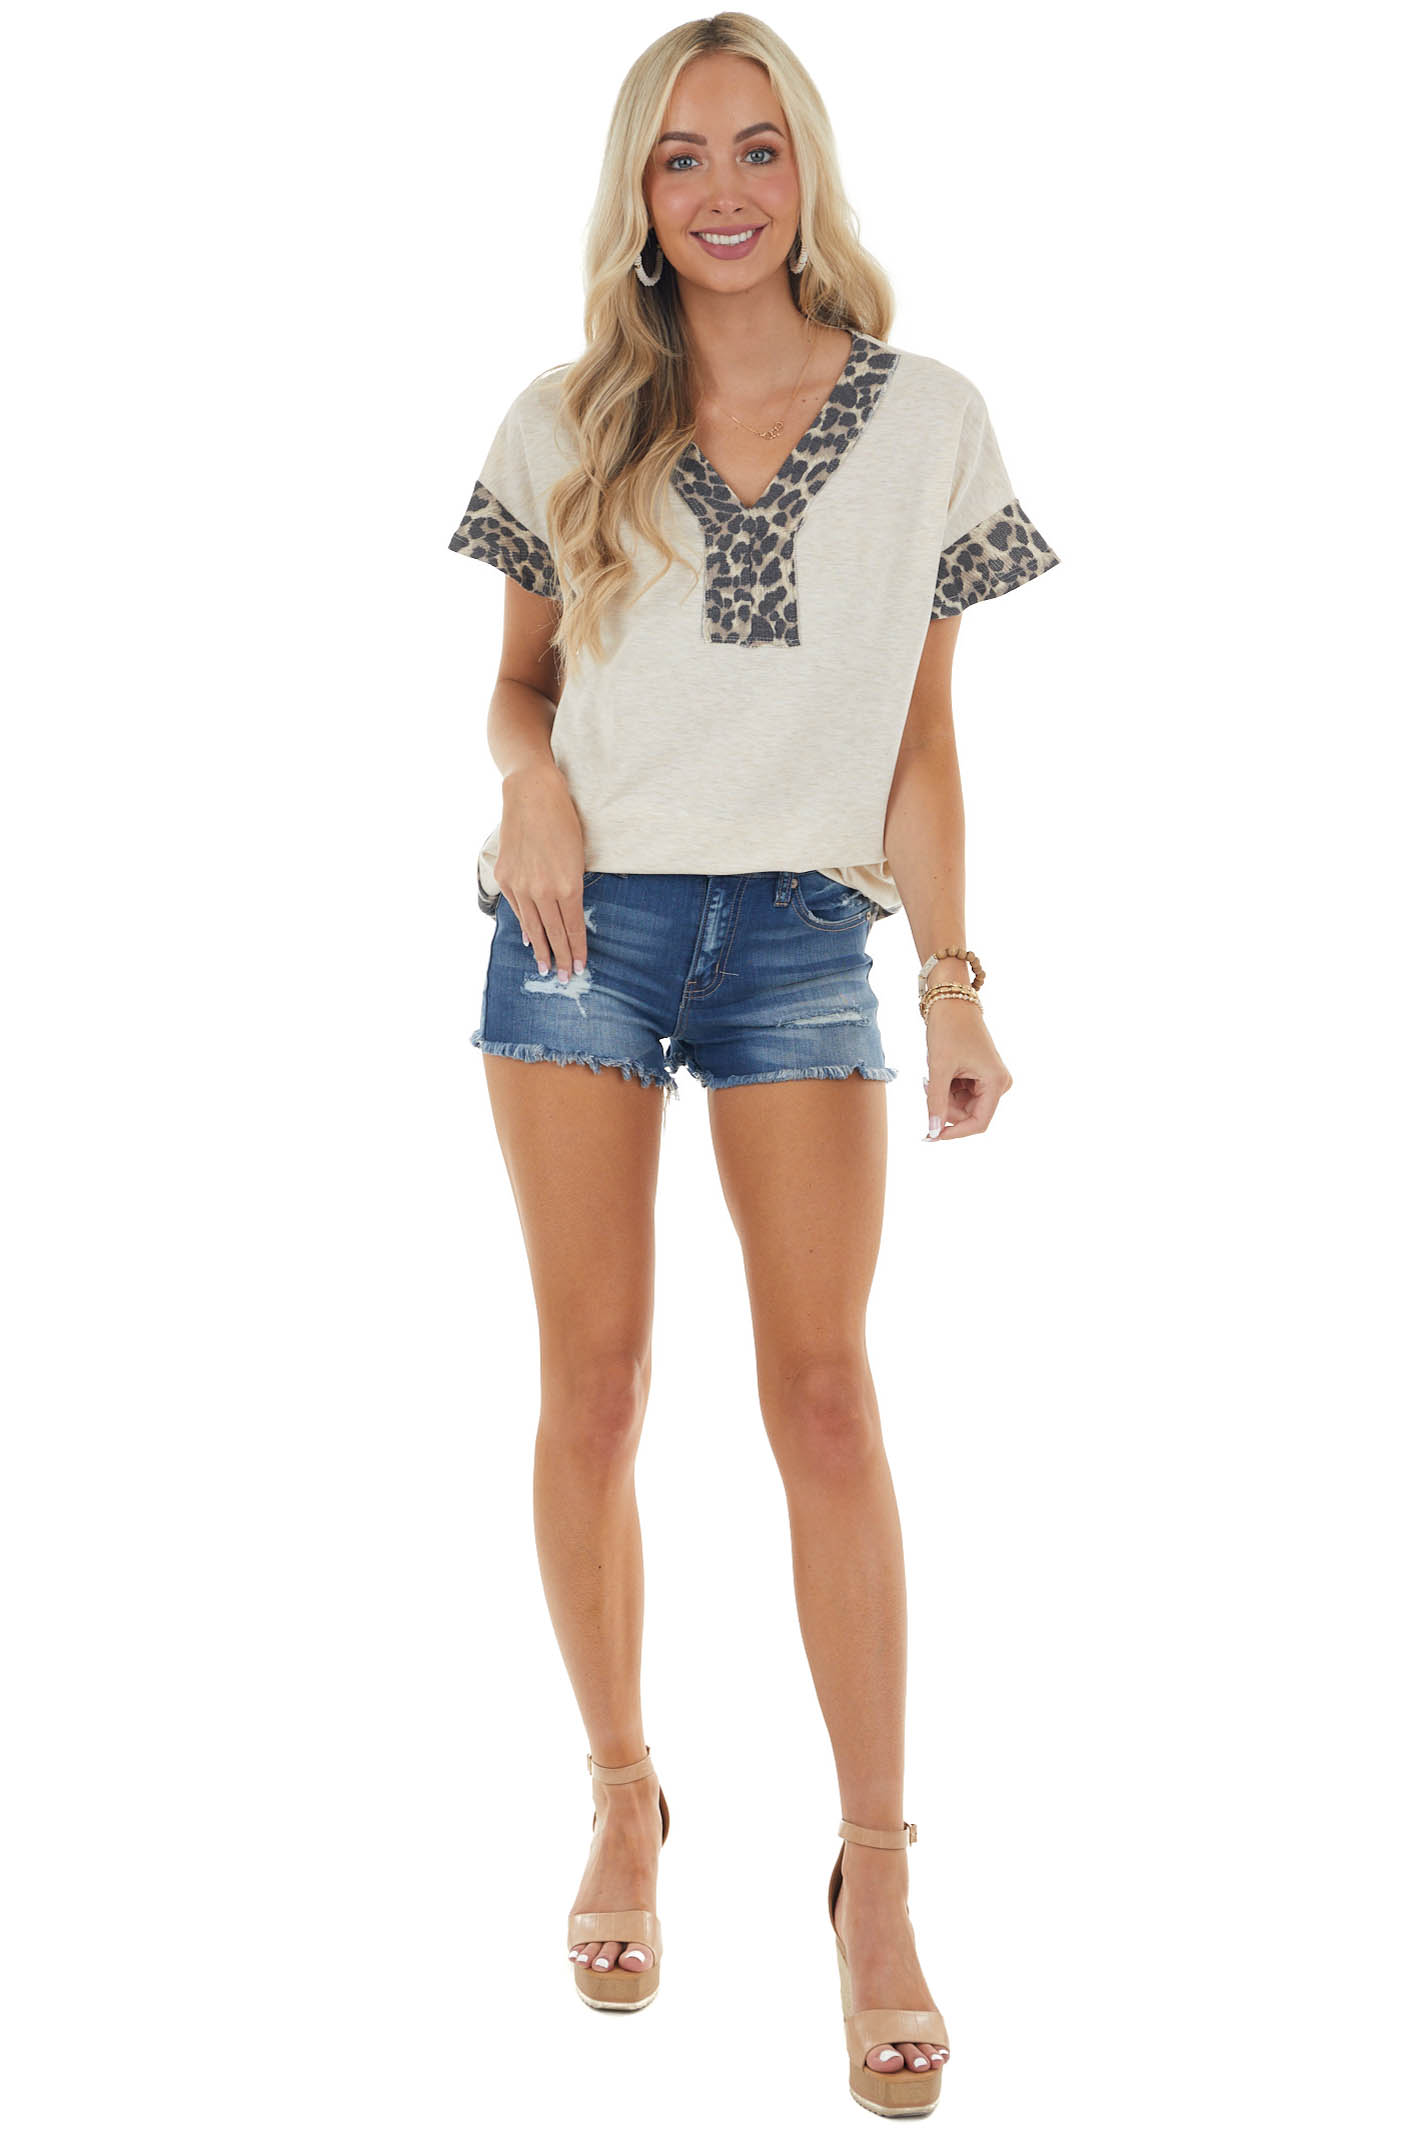 Heathered Beige and Leopard Print Contrast V Neck Knit Top